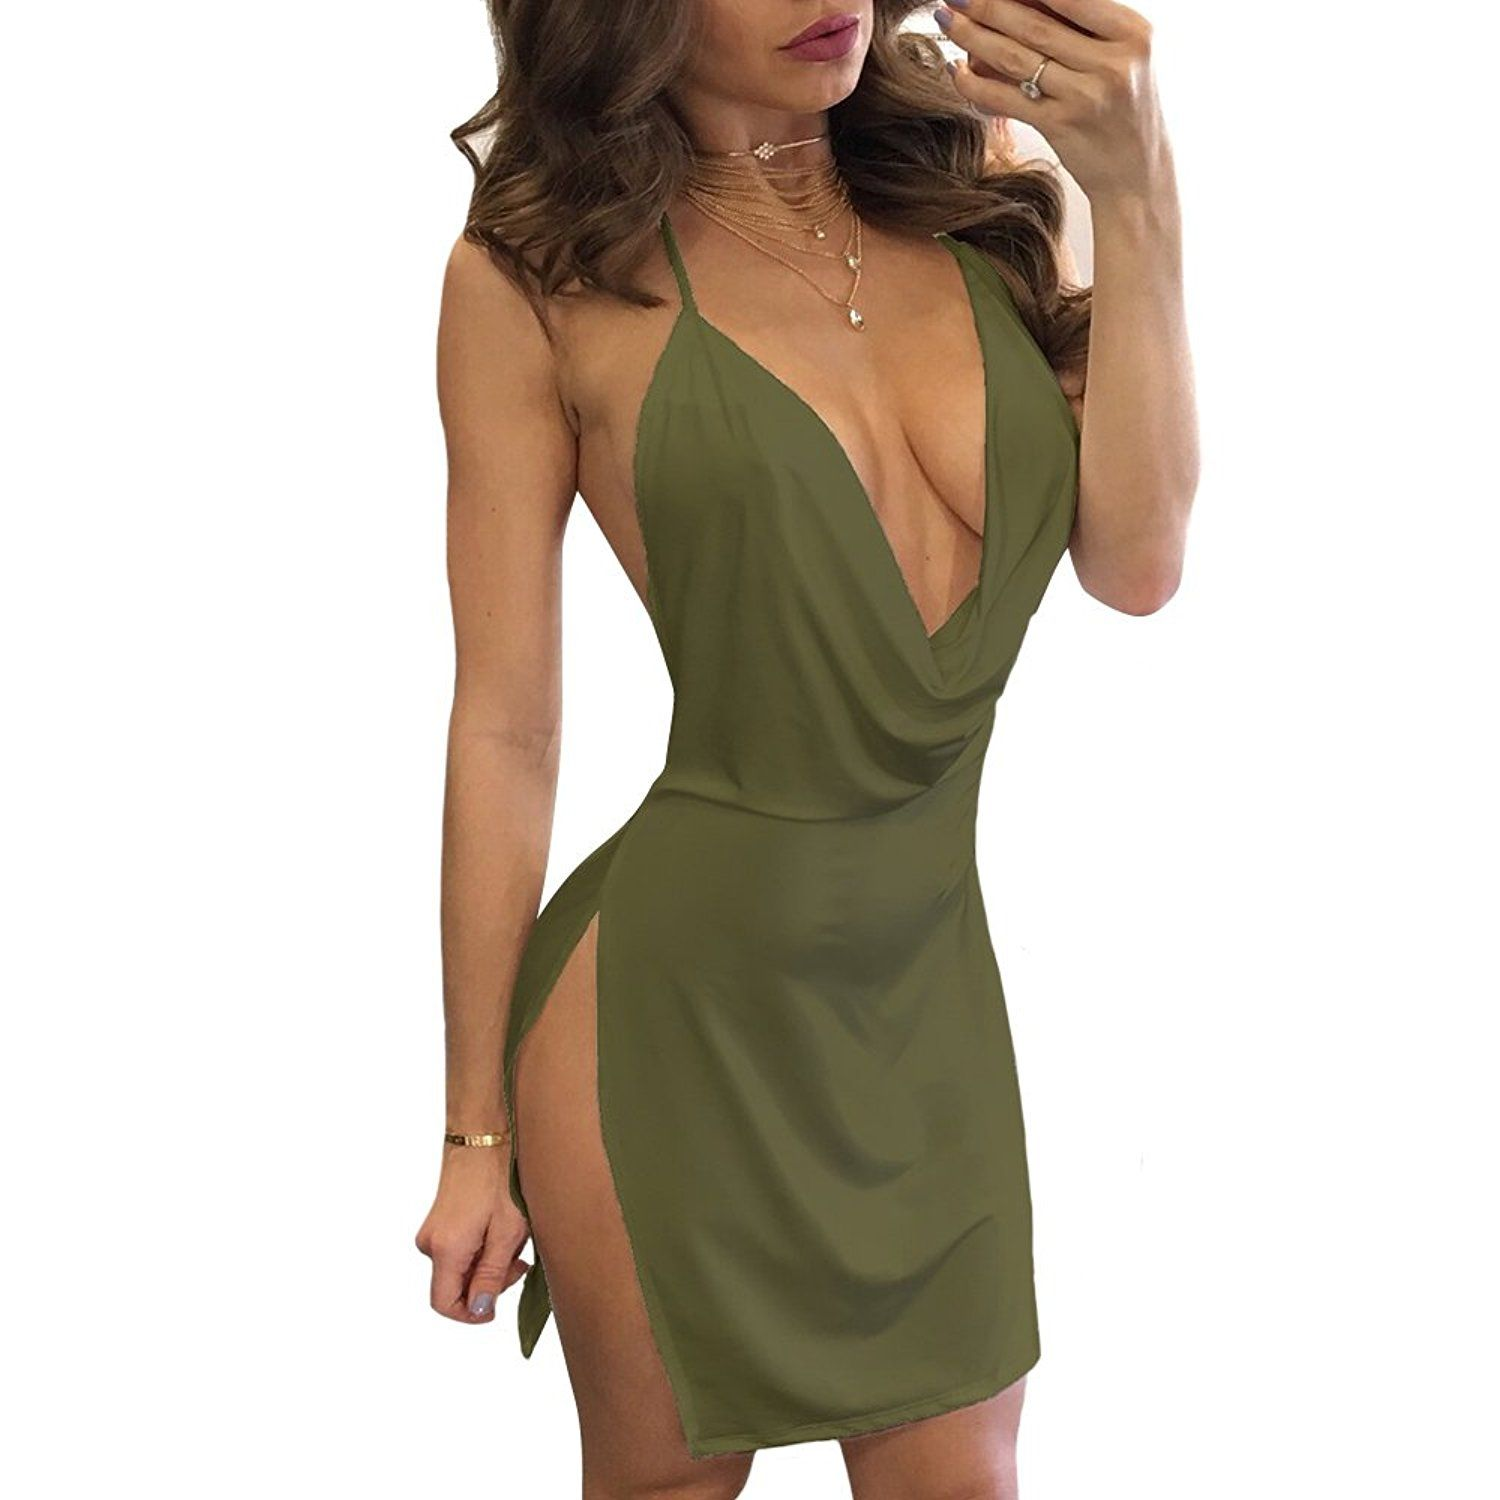 e89d778316a VANCOL Women s Sexy Deep V-Neck Halter Backless Slit Mini Party Club Dress